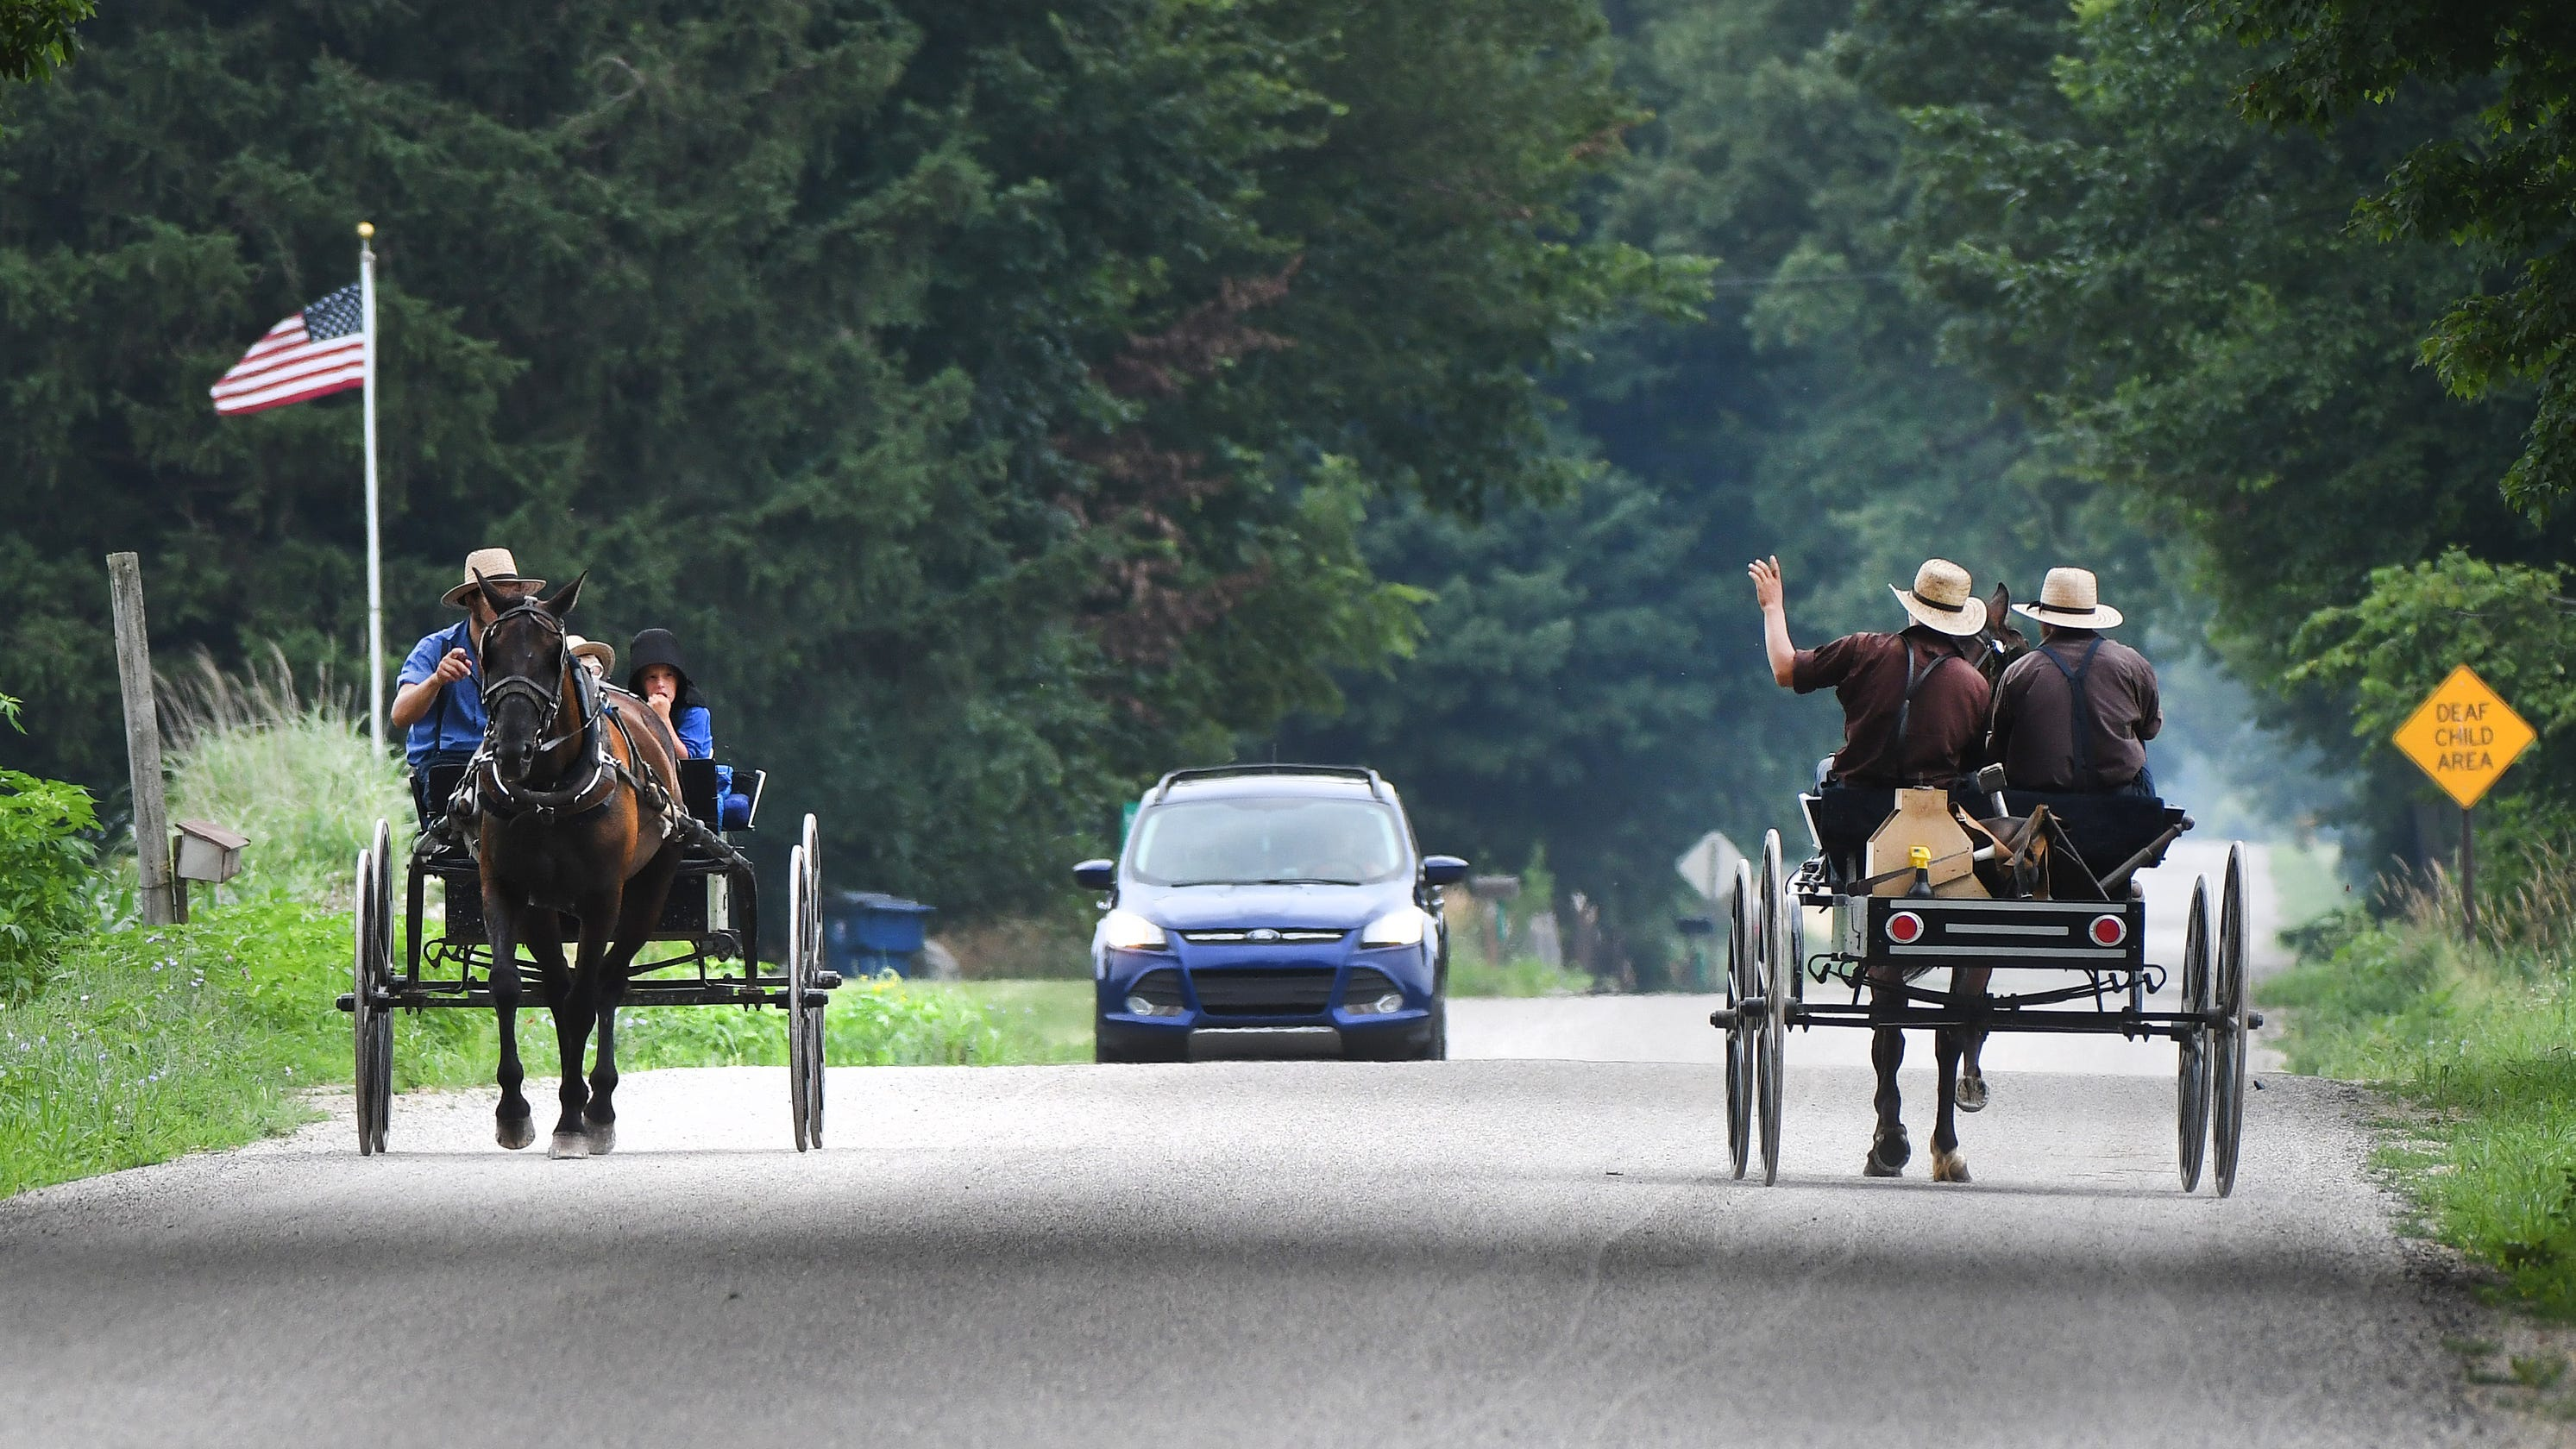 When worlds collide: Amish buggies, heavy vehicles meet with